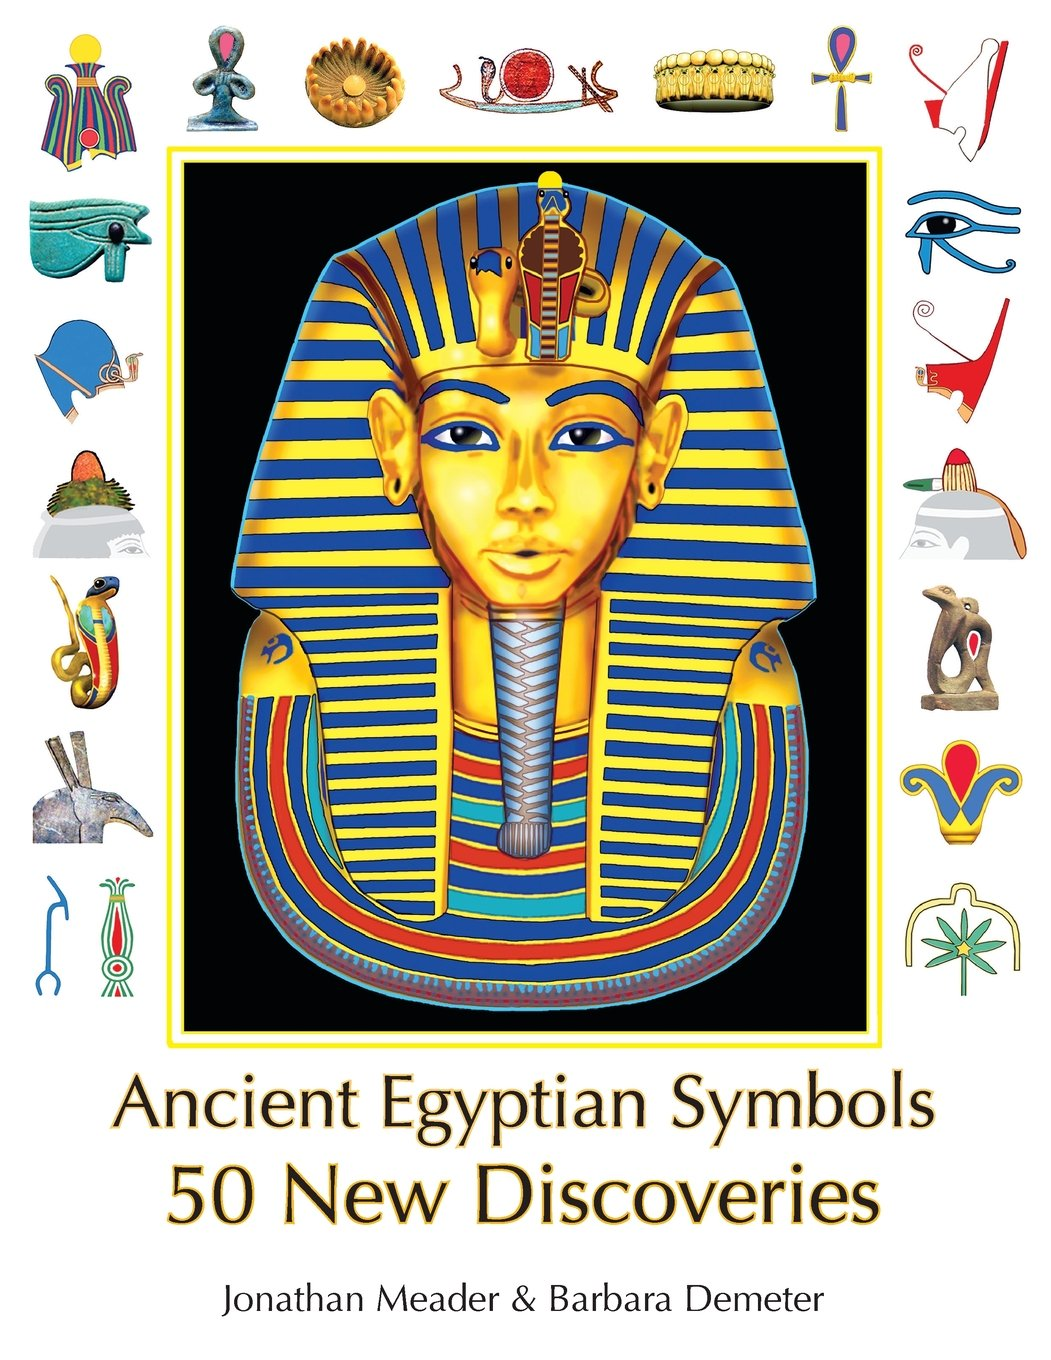 Ancient egyptian symbols 50 new discoveries jonathan meader ancient egyptian symbols 50 new discoveries jonathan meader barbara demeter 9780996683302 amazon books biocorpaavc